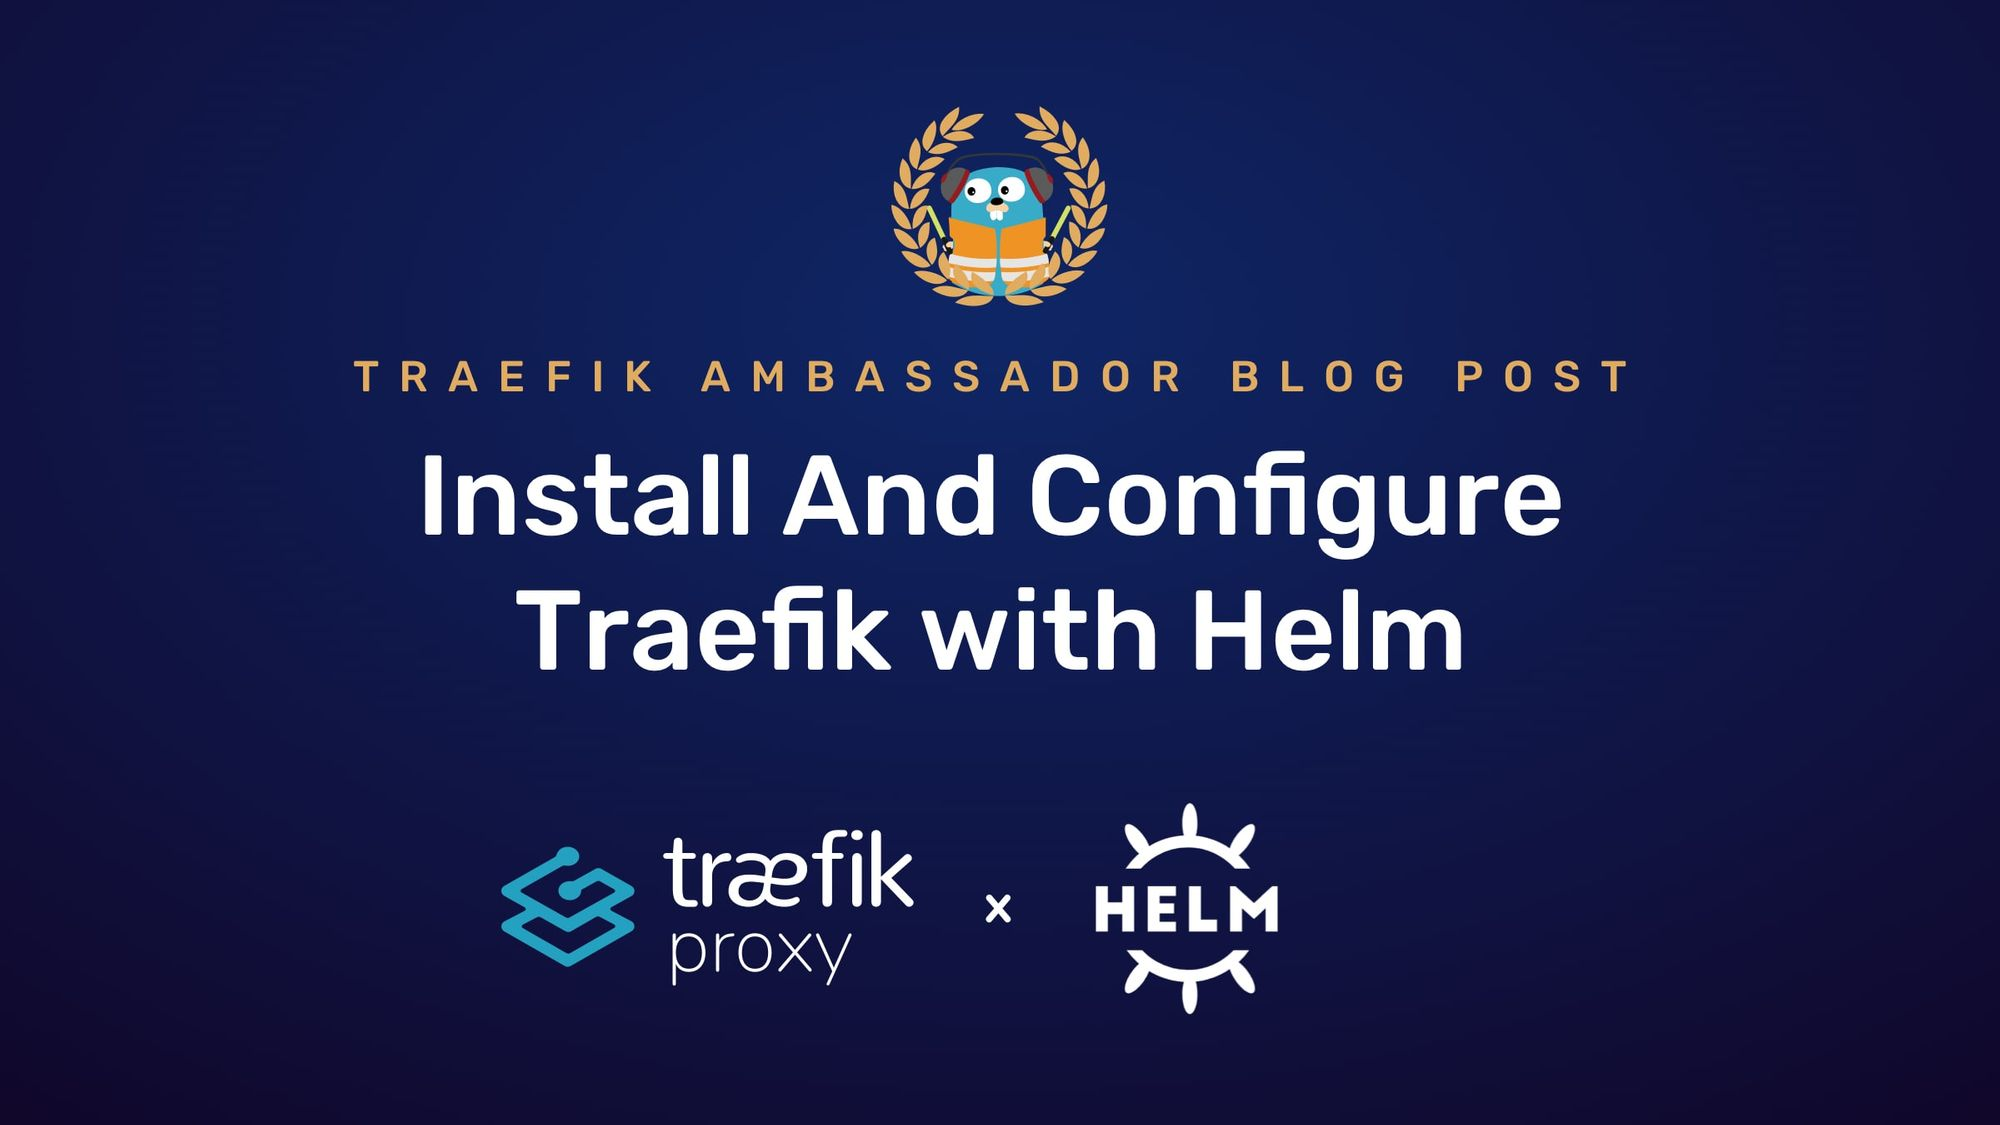 Install And Configure Traefik with Helm